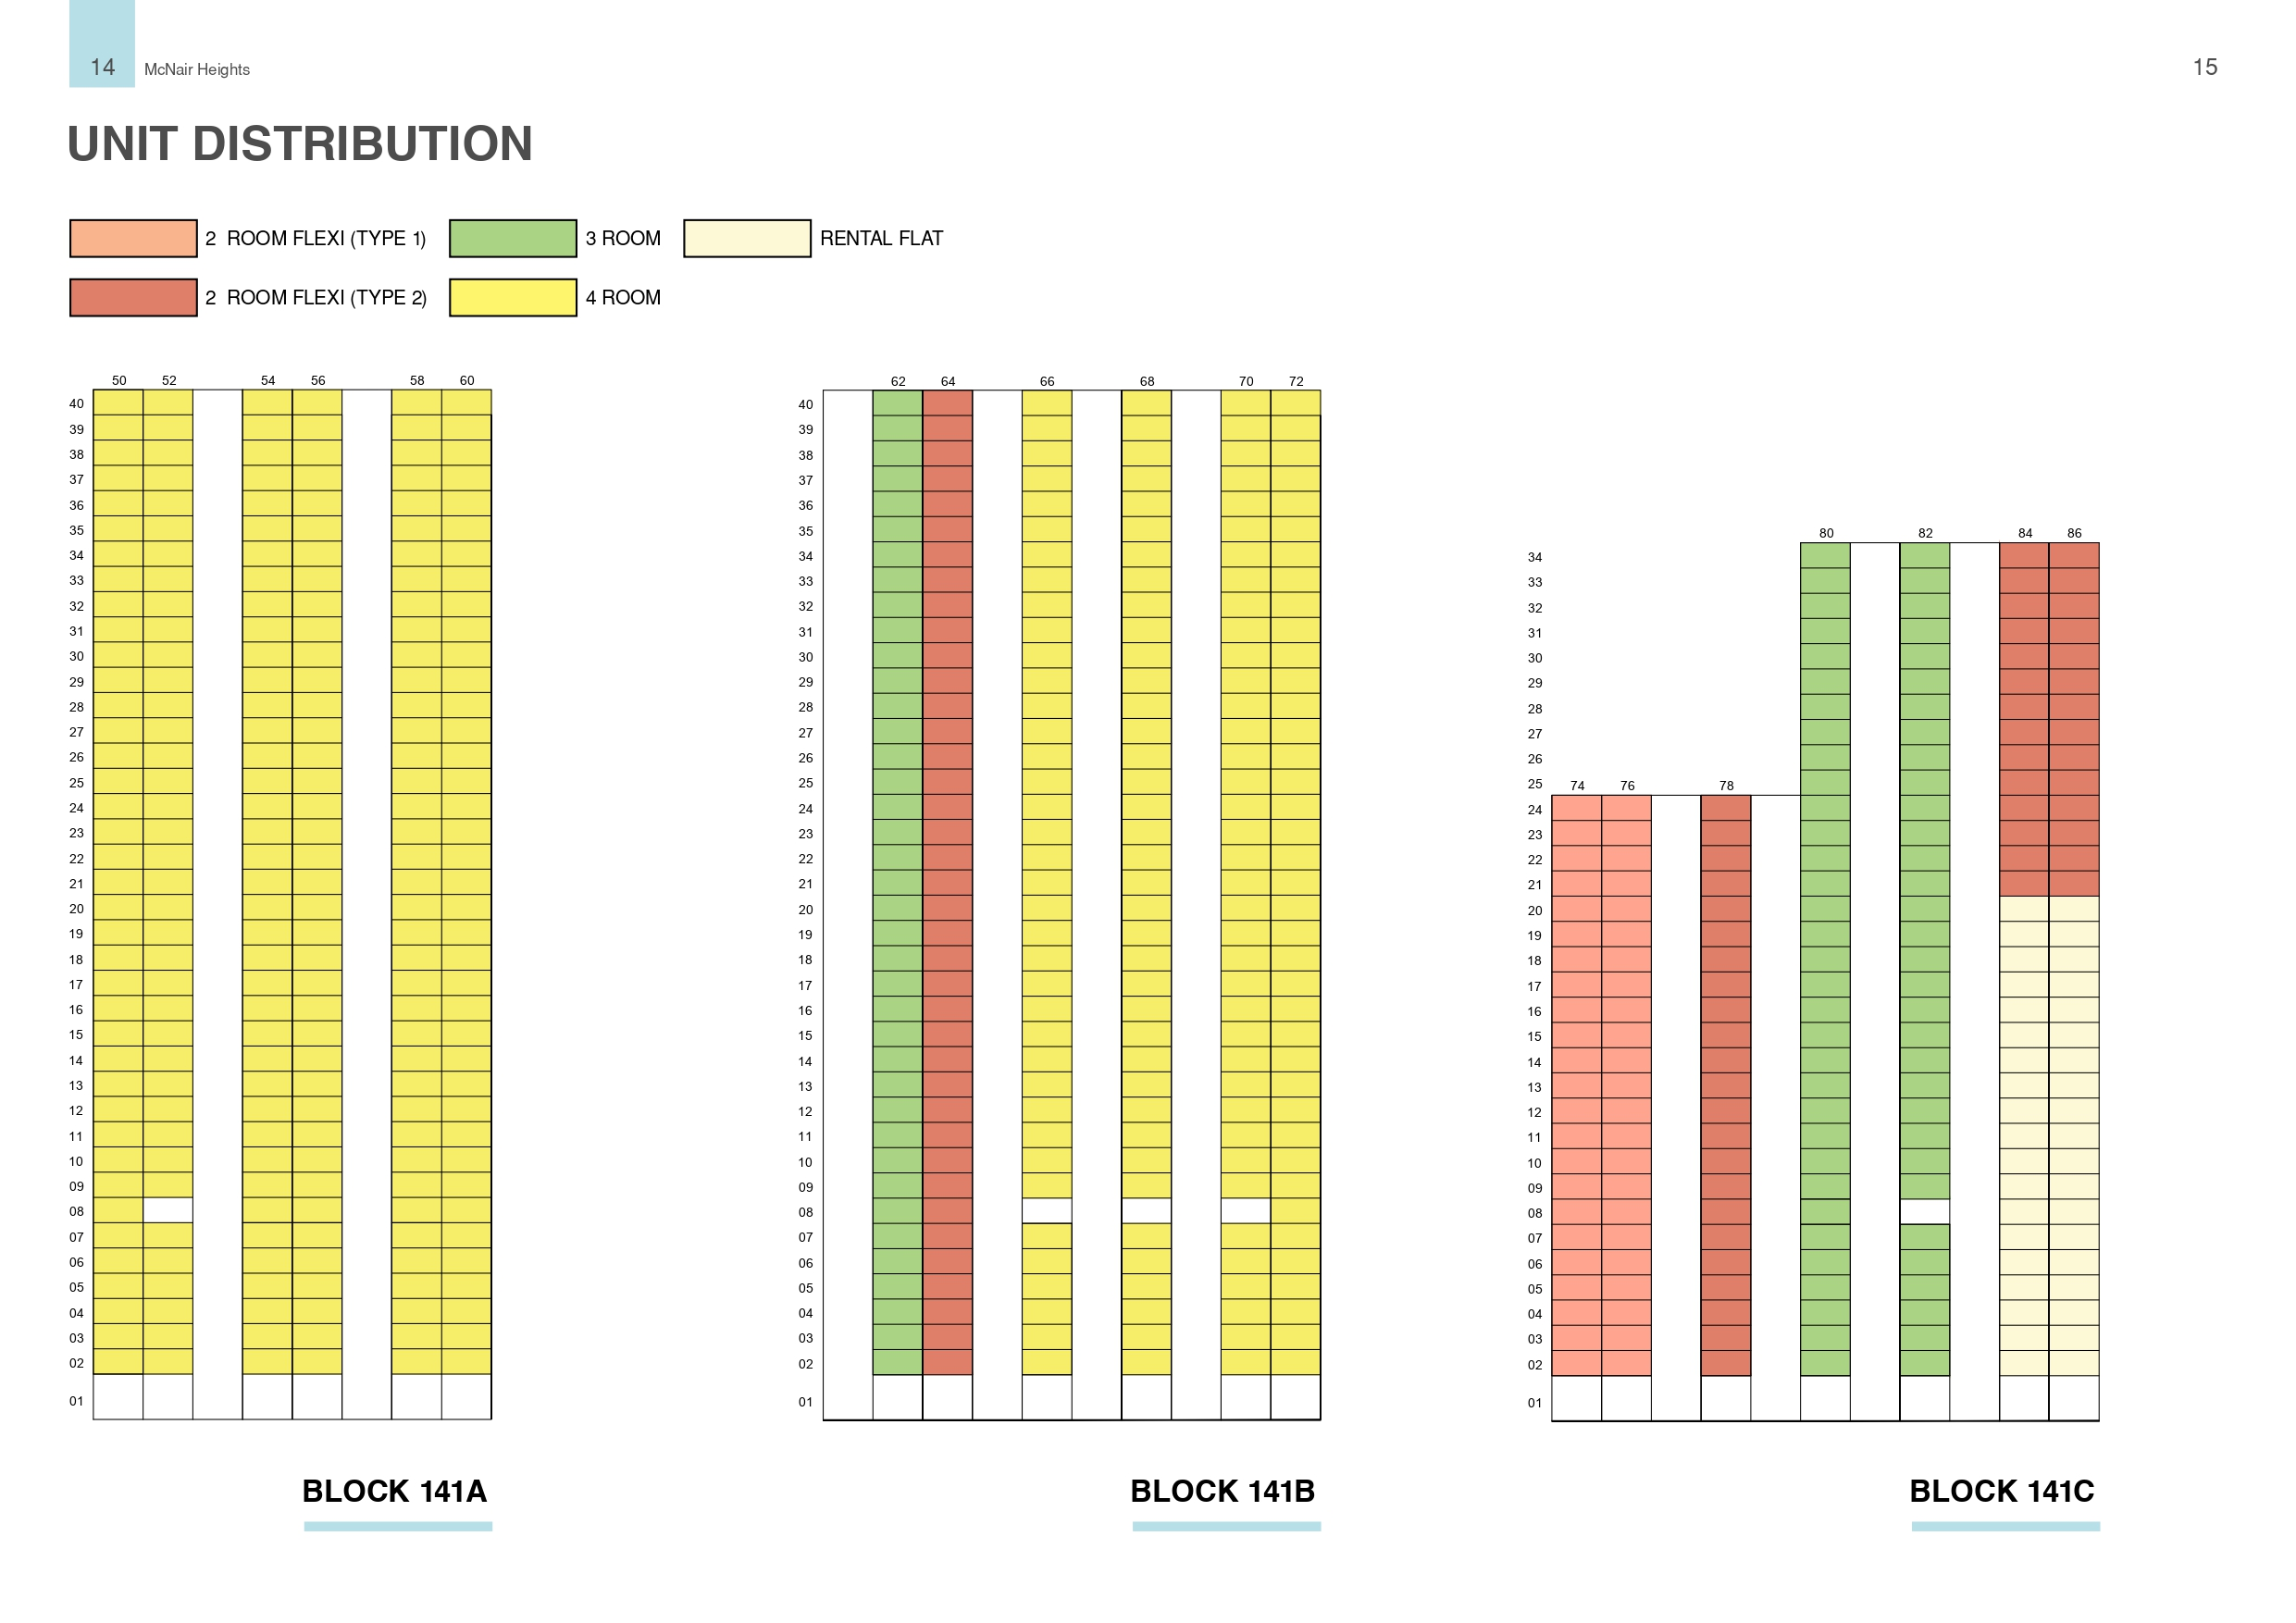 McNair Heights Unit Distribution